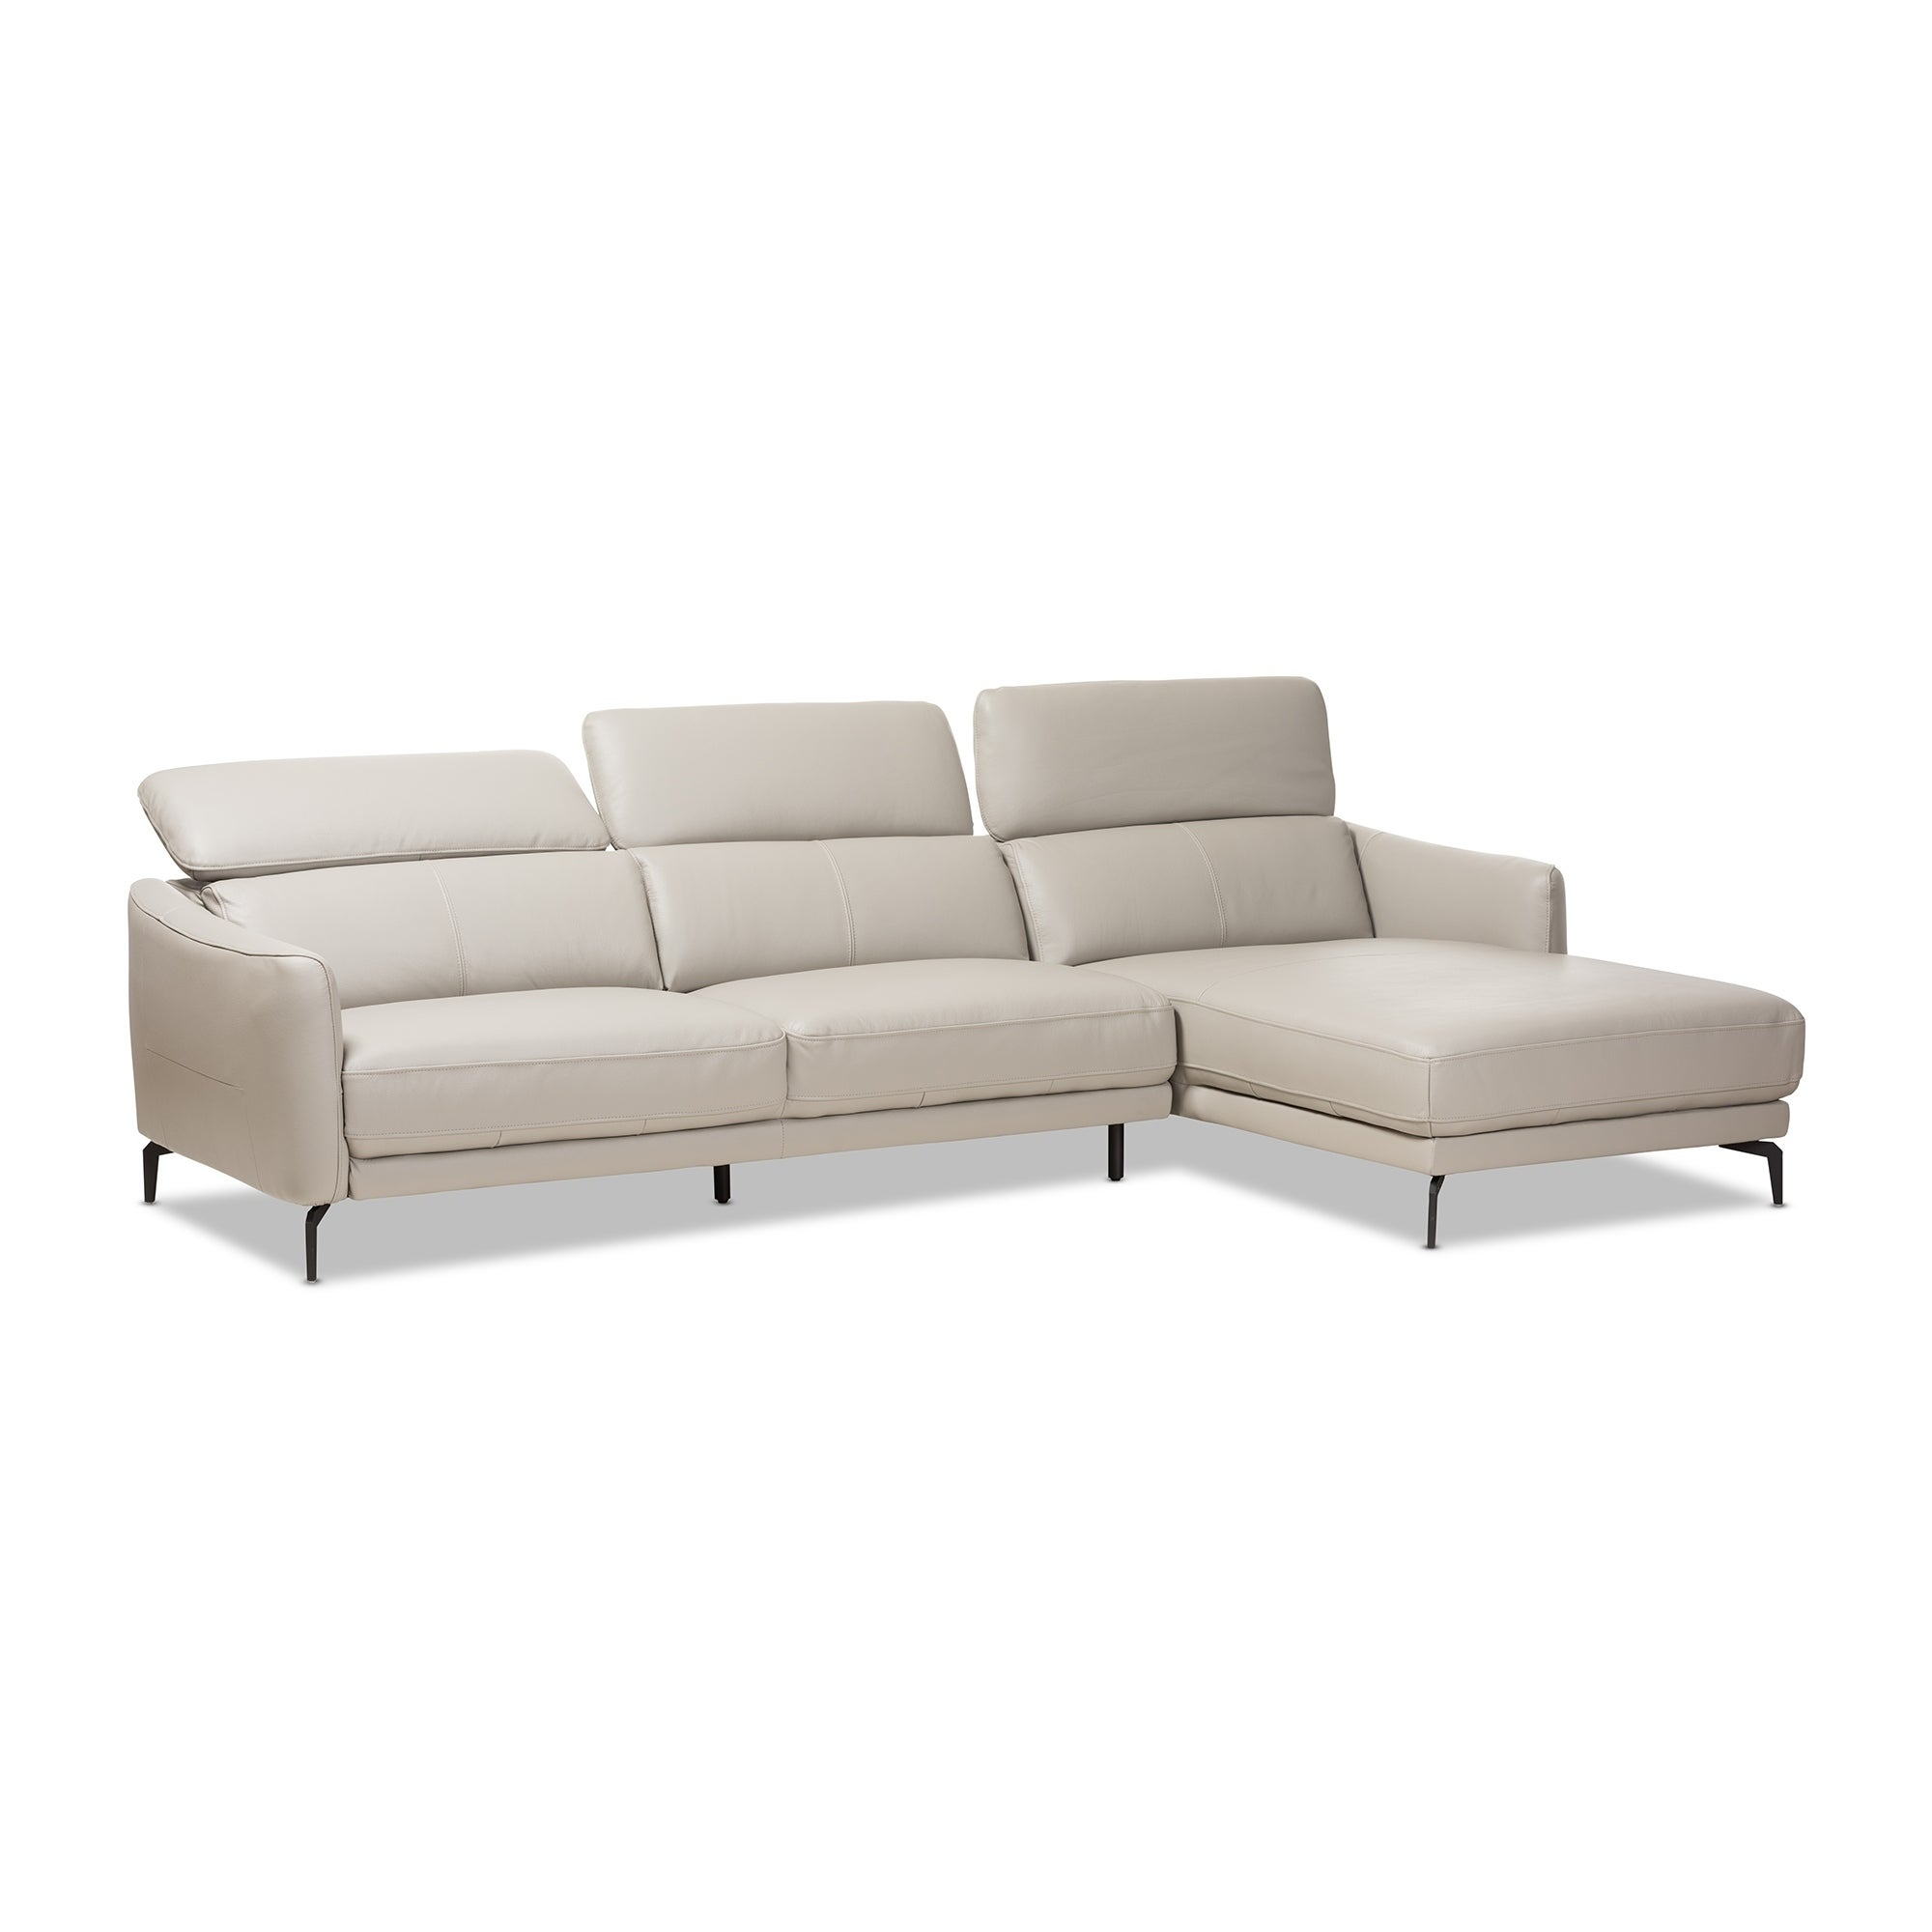 right sectional sofa hayneedle options designs product cfm with doris piece storage rightarmfacing ottoman facing fairmont chaise